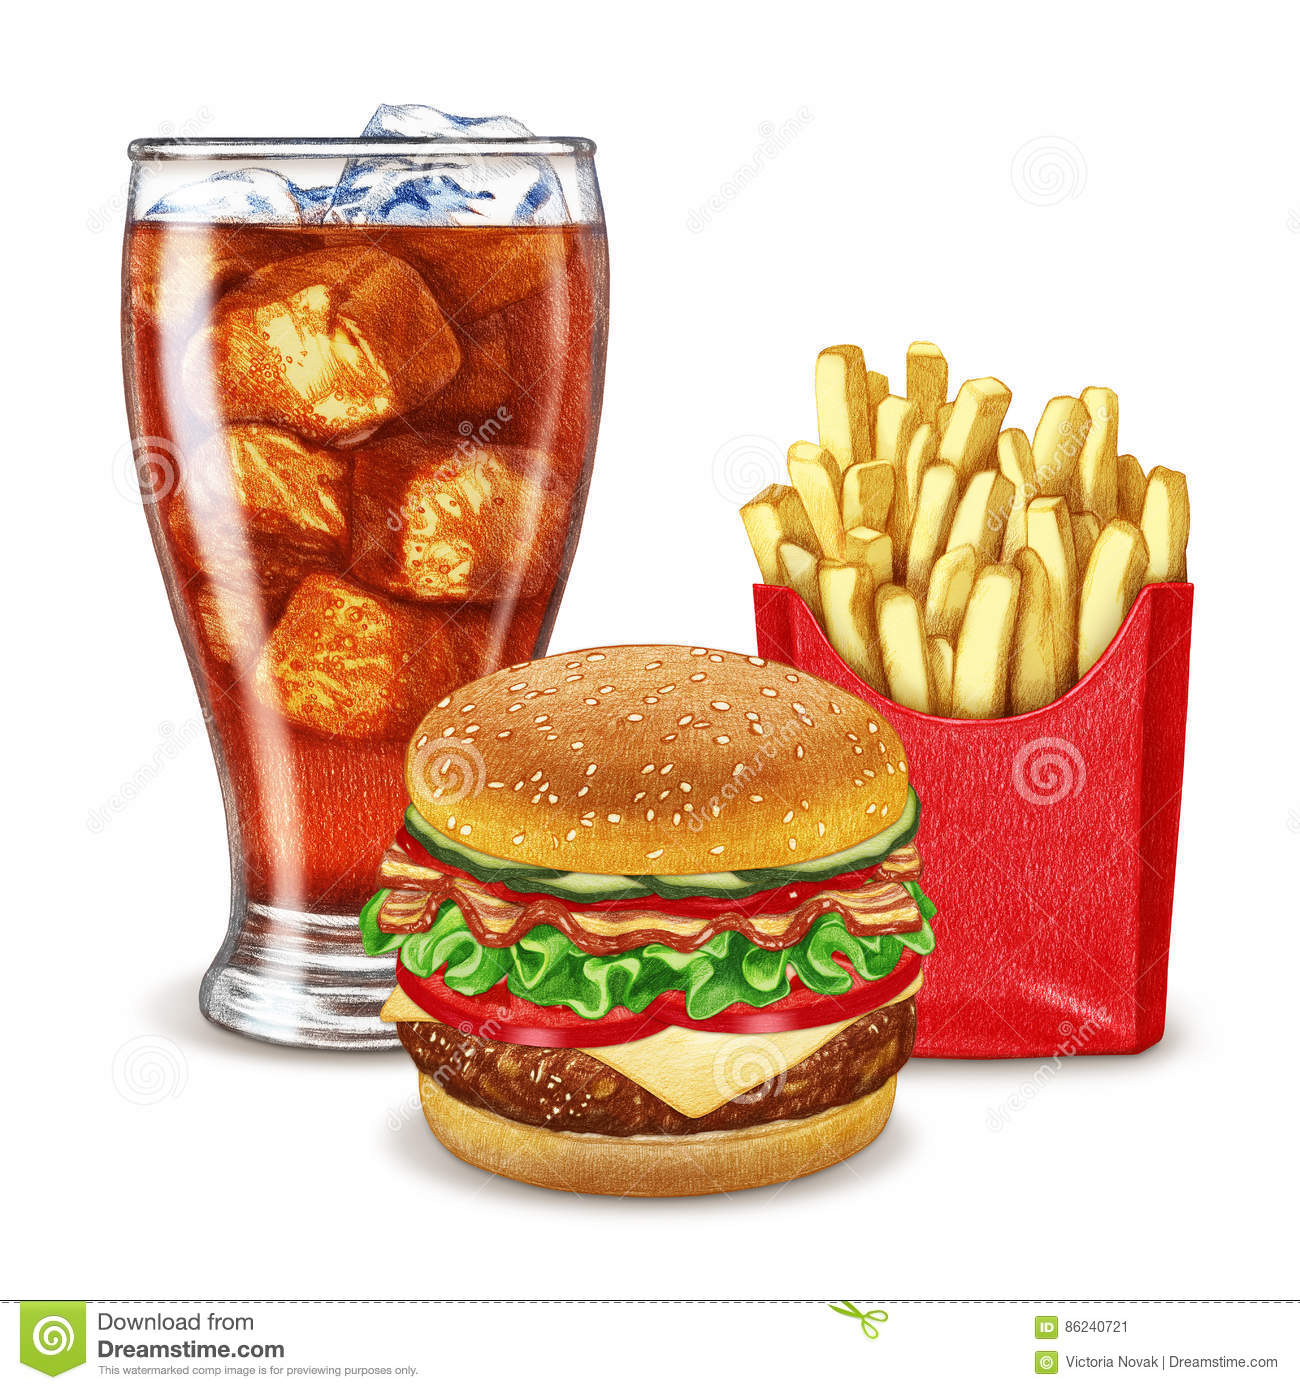 Soft Drink Cheeseburger And French Fries Stock